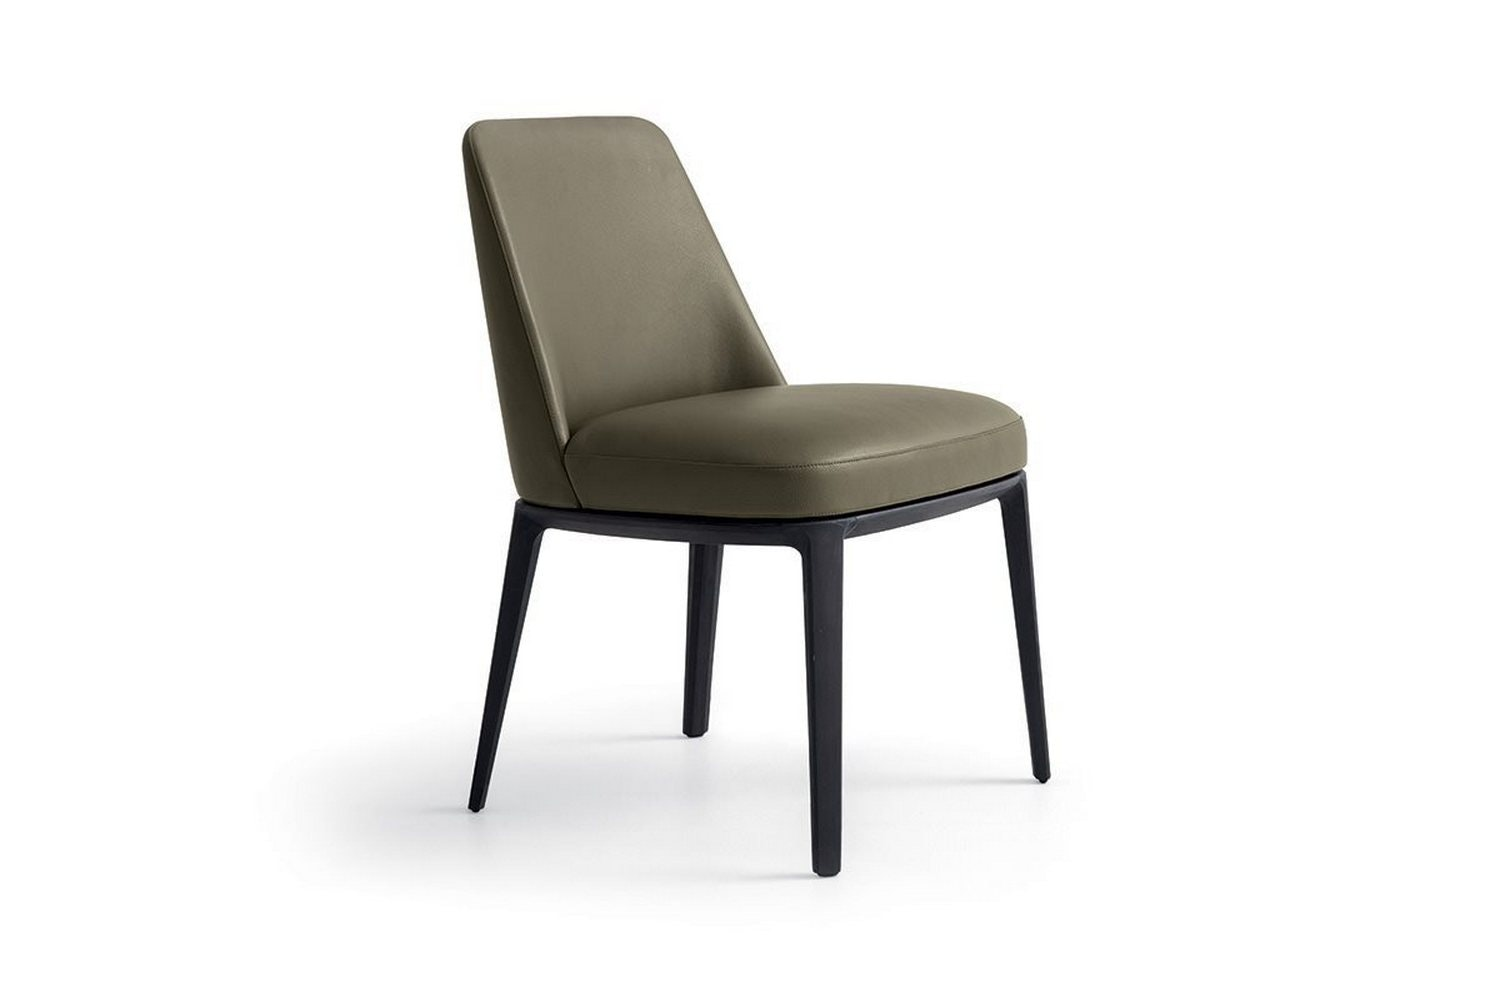 Sophie Chair by Emmanuel Gallina for Poliform